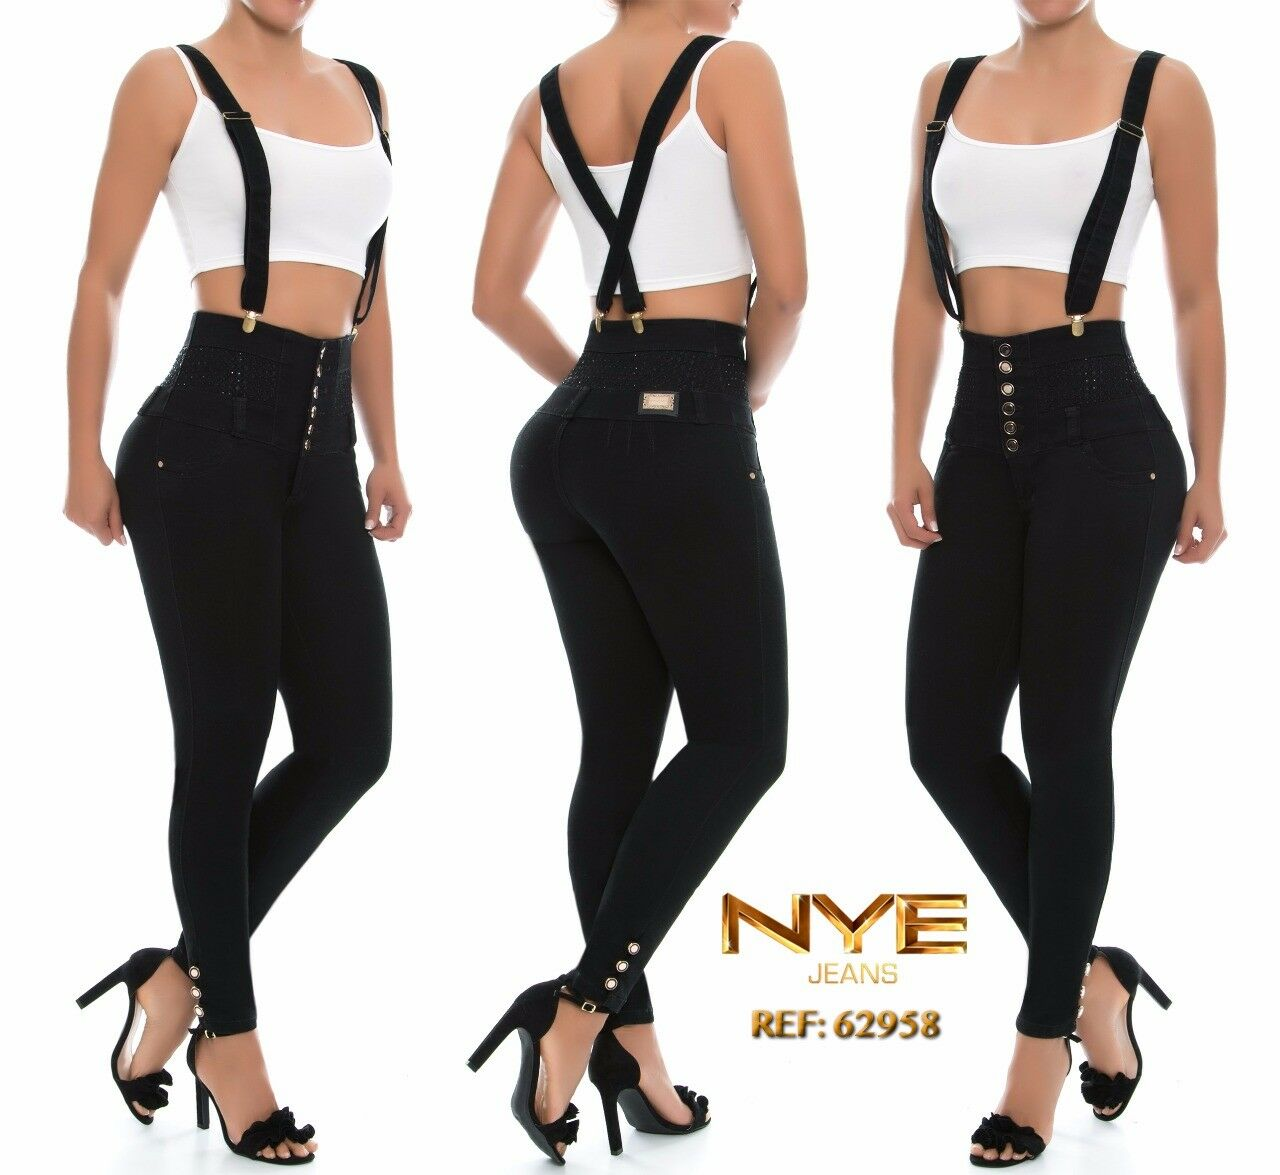 NYE JEANS COLOMBIANOS WOMEN JEANS HIGH WAISTED PUSH UP JEANS LEVANTA COLA